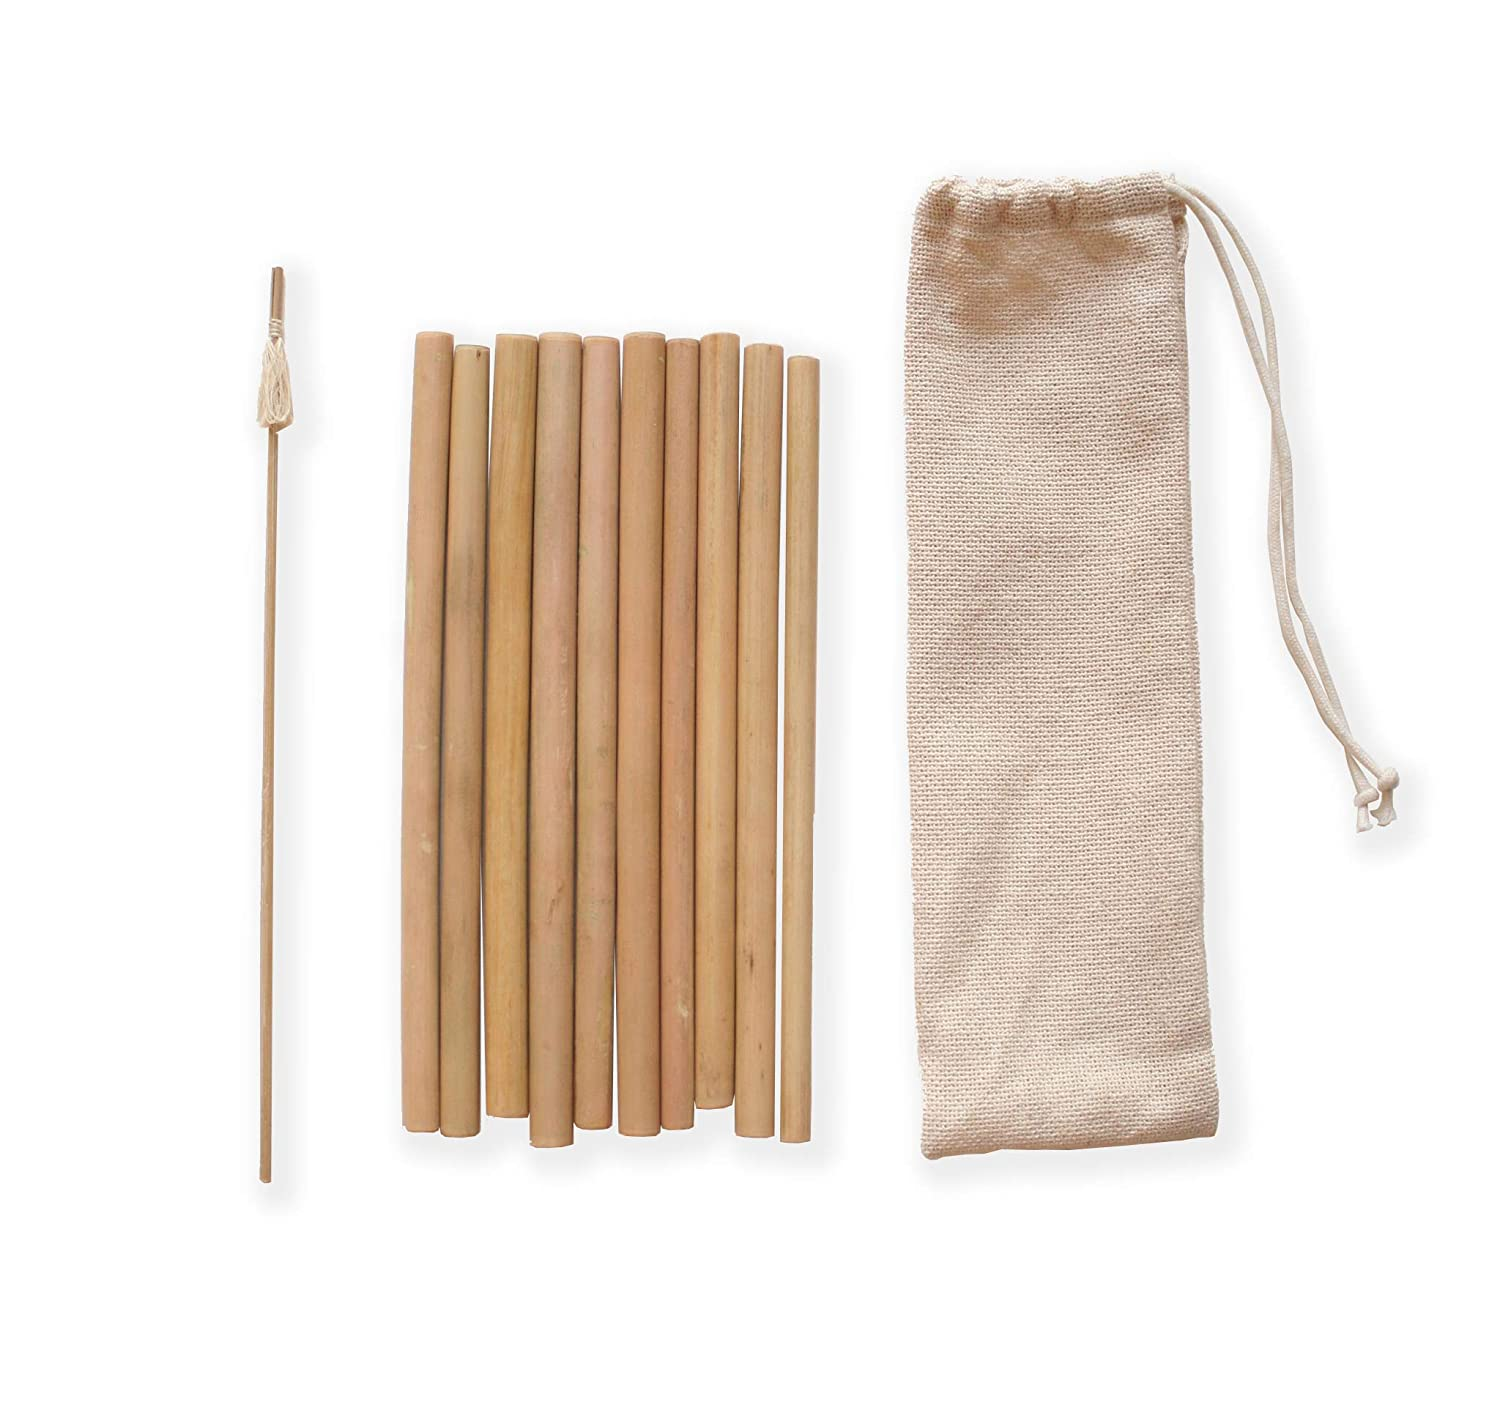 L'annamite Organic Bamboo Drinking Straws Set of 10, One Size, Natural Color